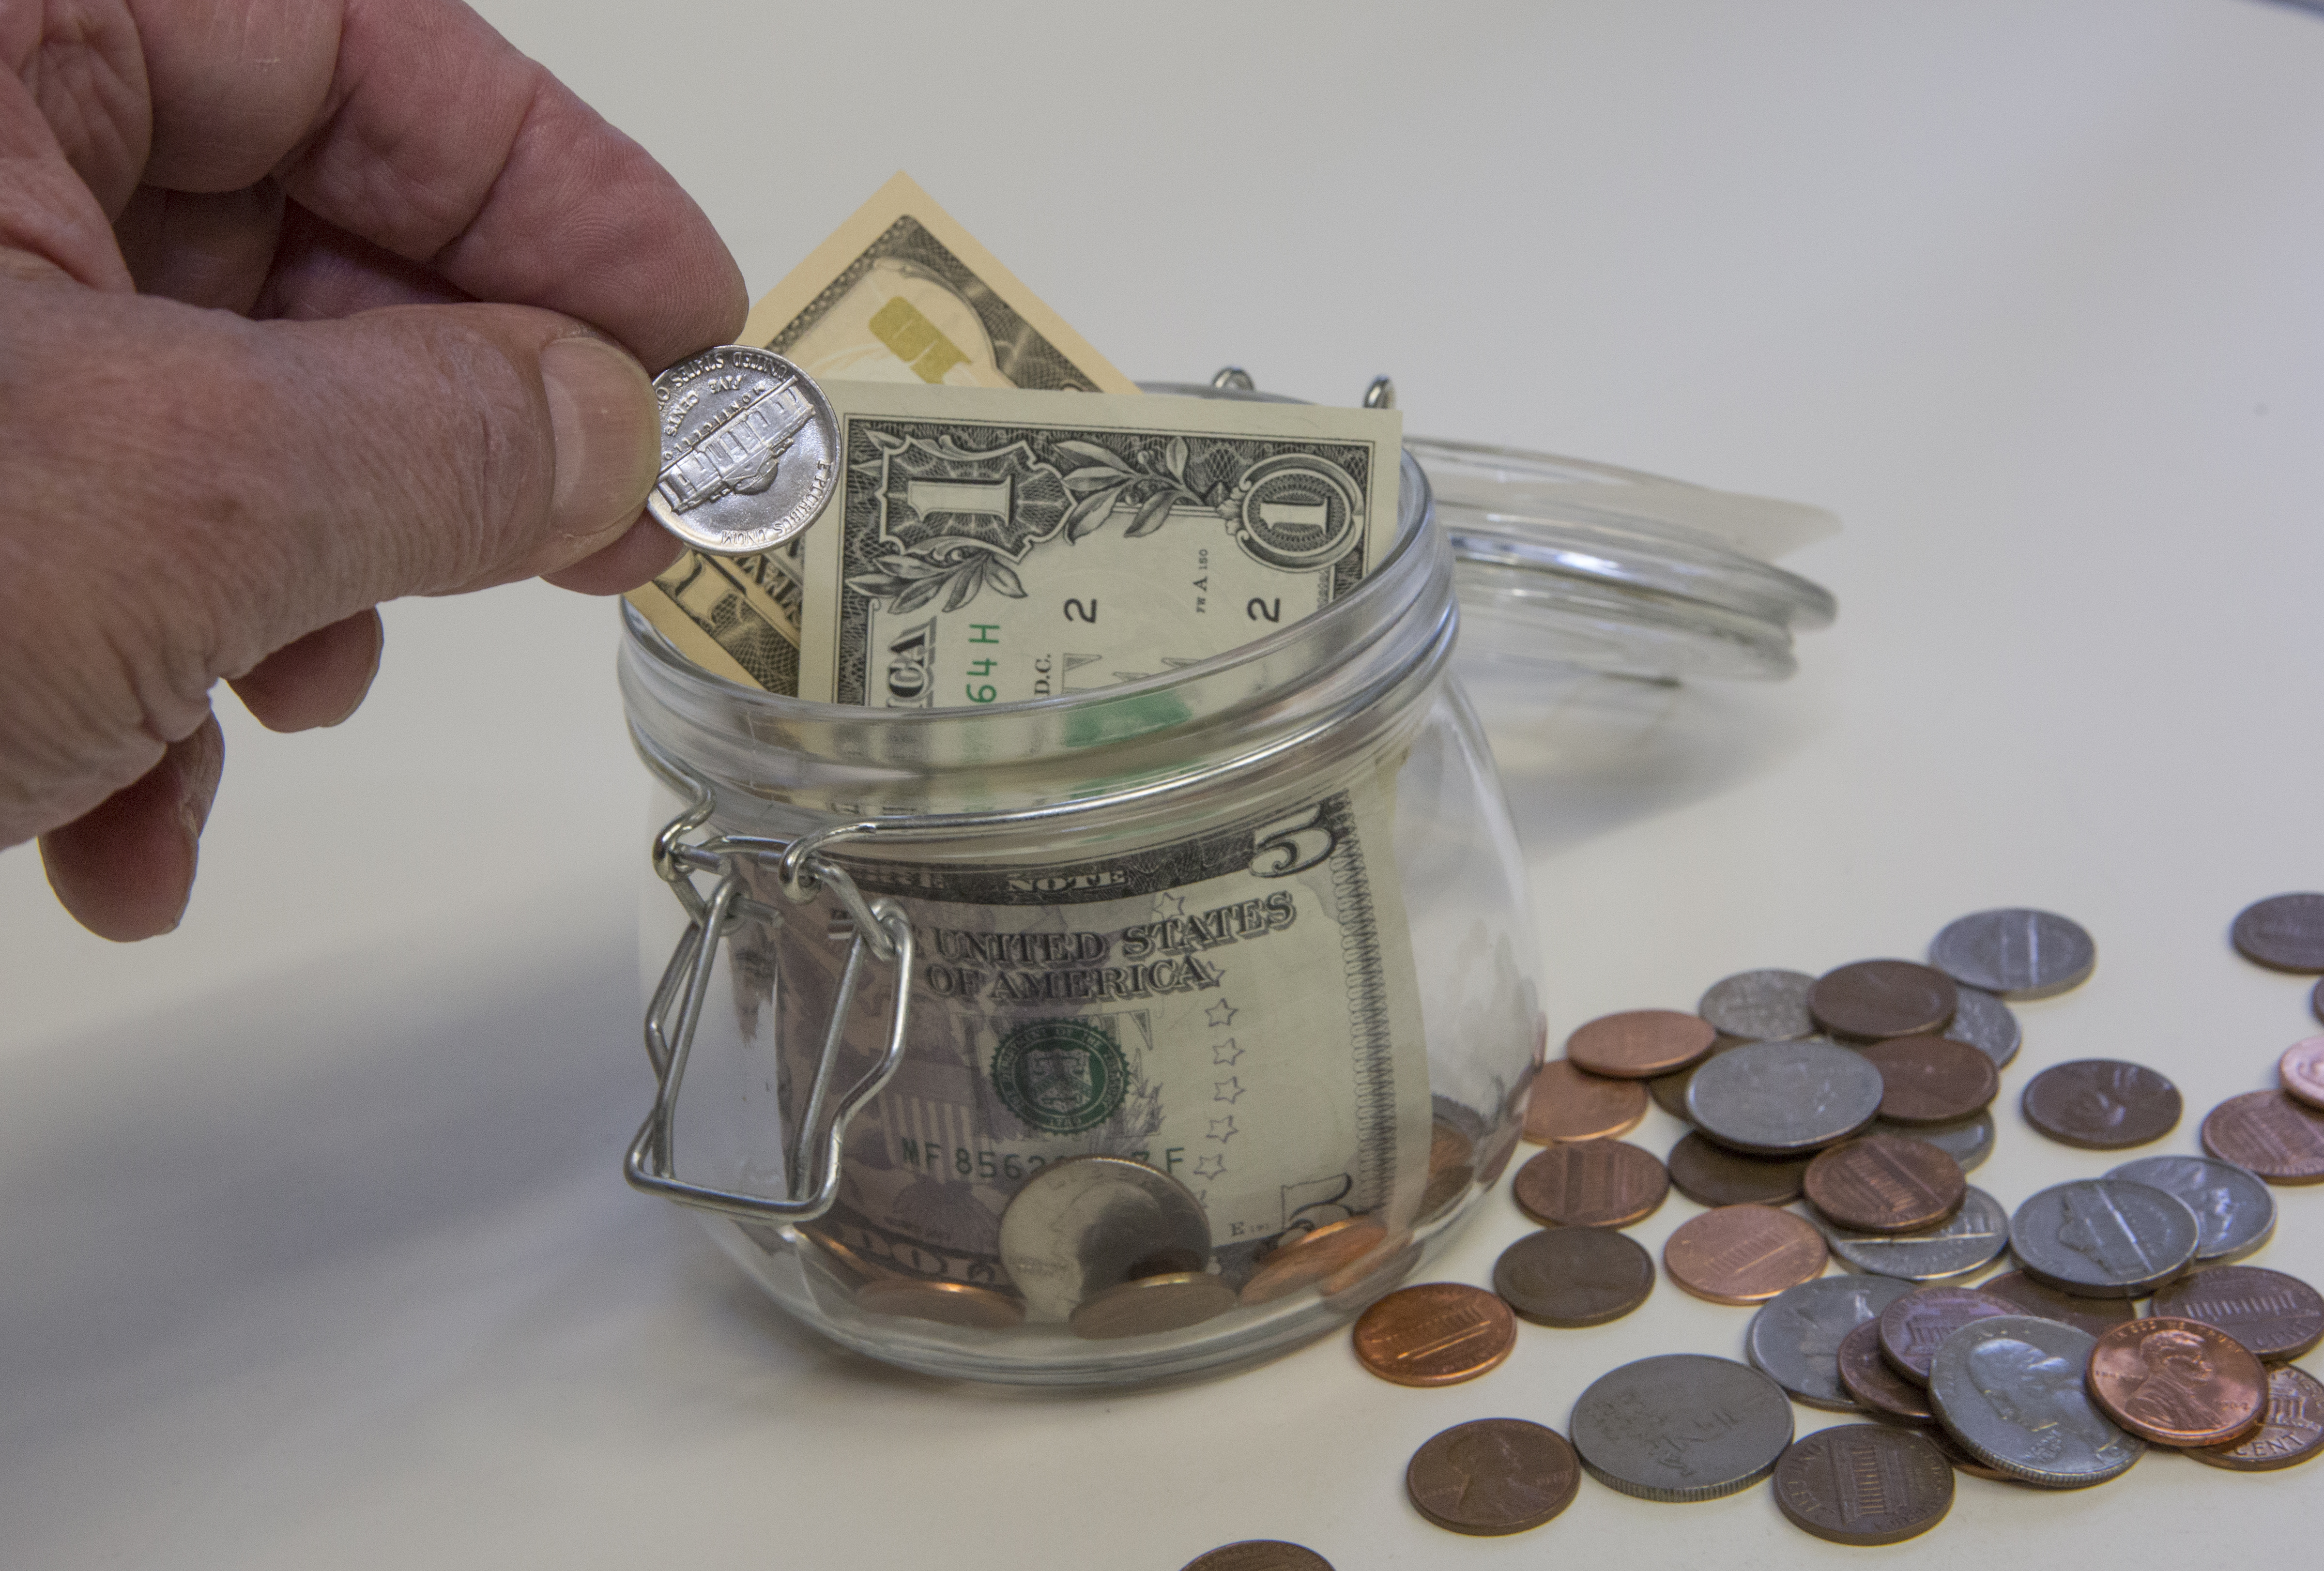 A hand drops a nickel into a savings jar